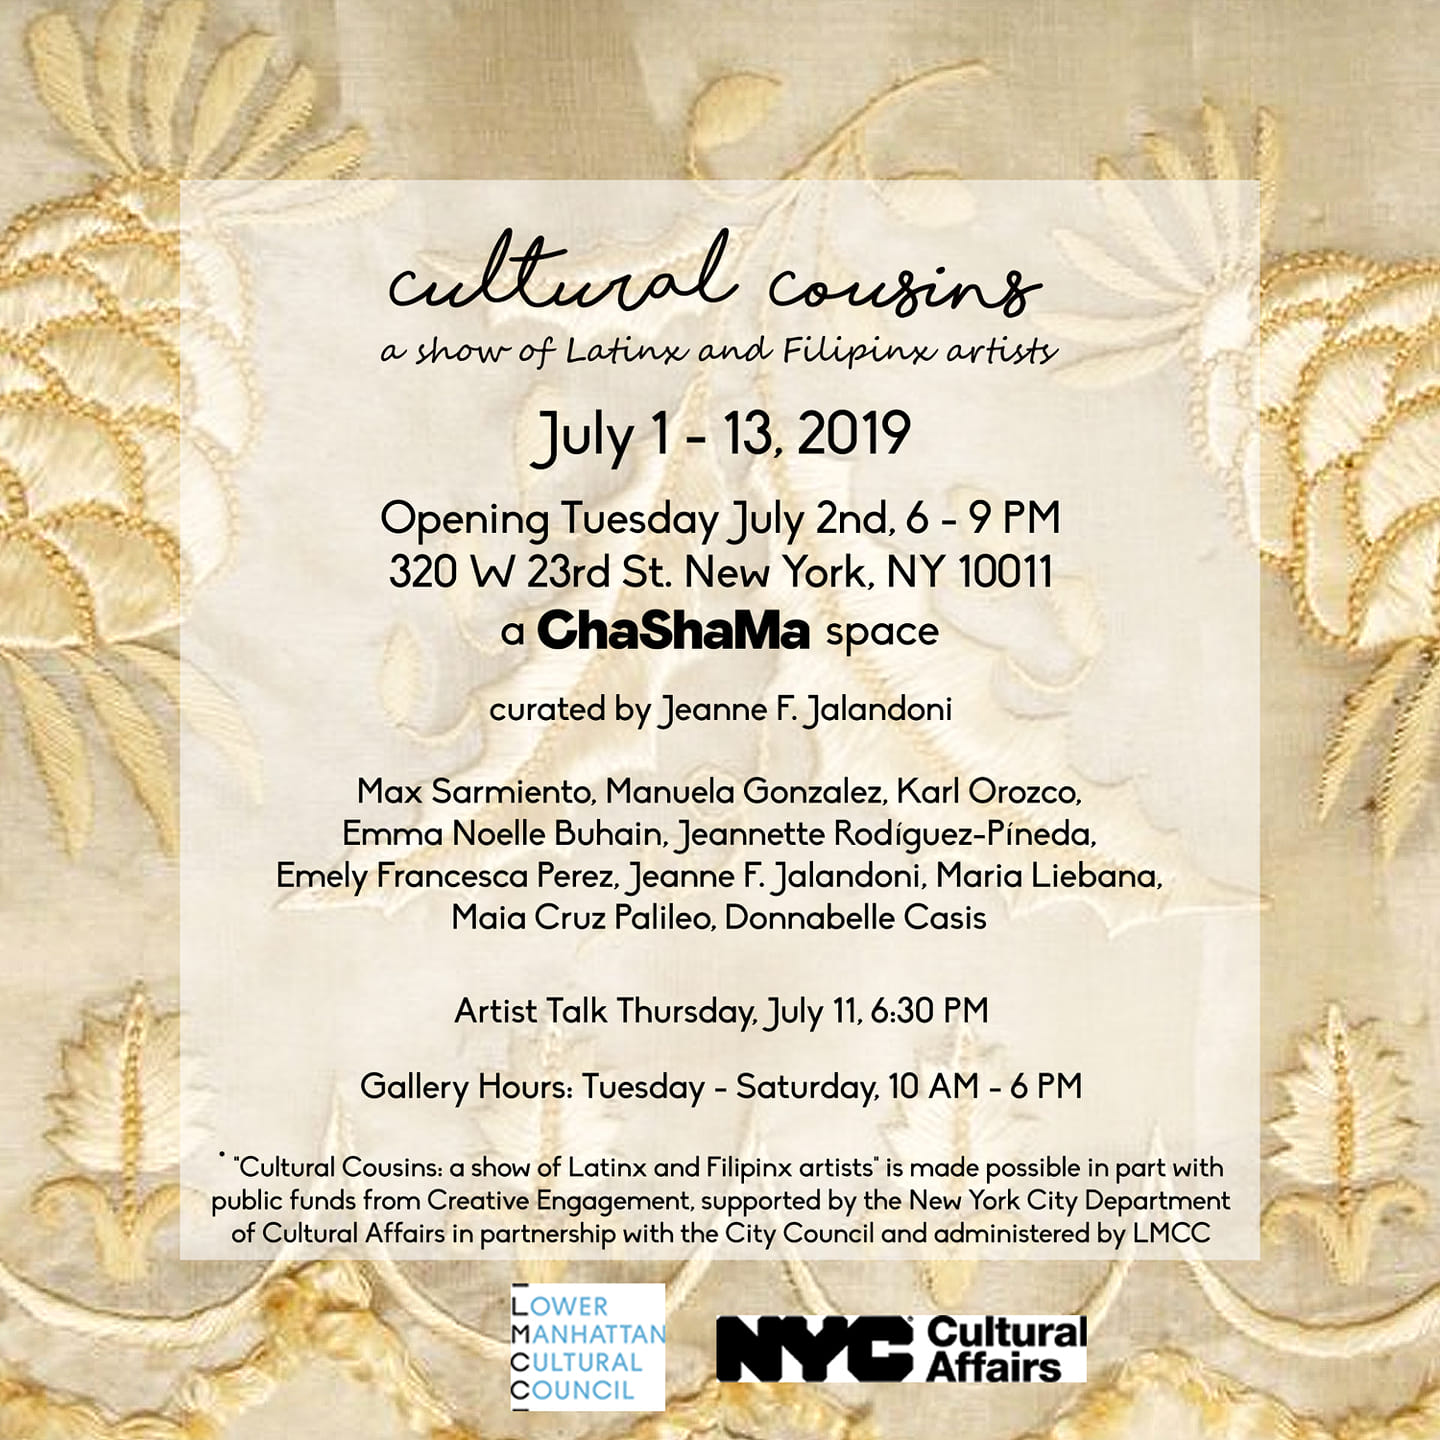 Cultural Cousins - a show of Latinx and Filipinx artists